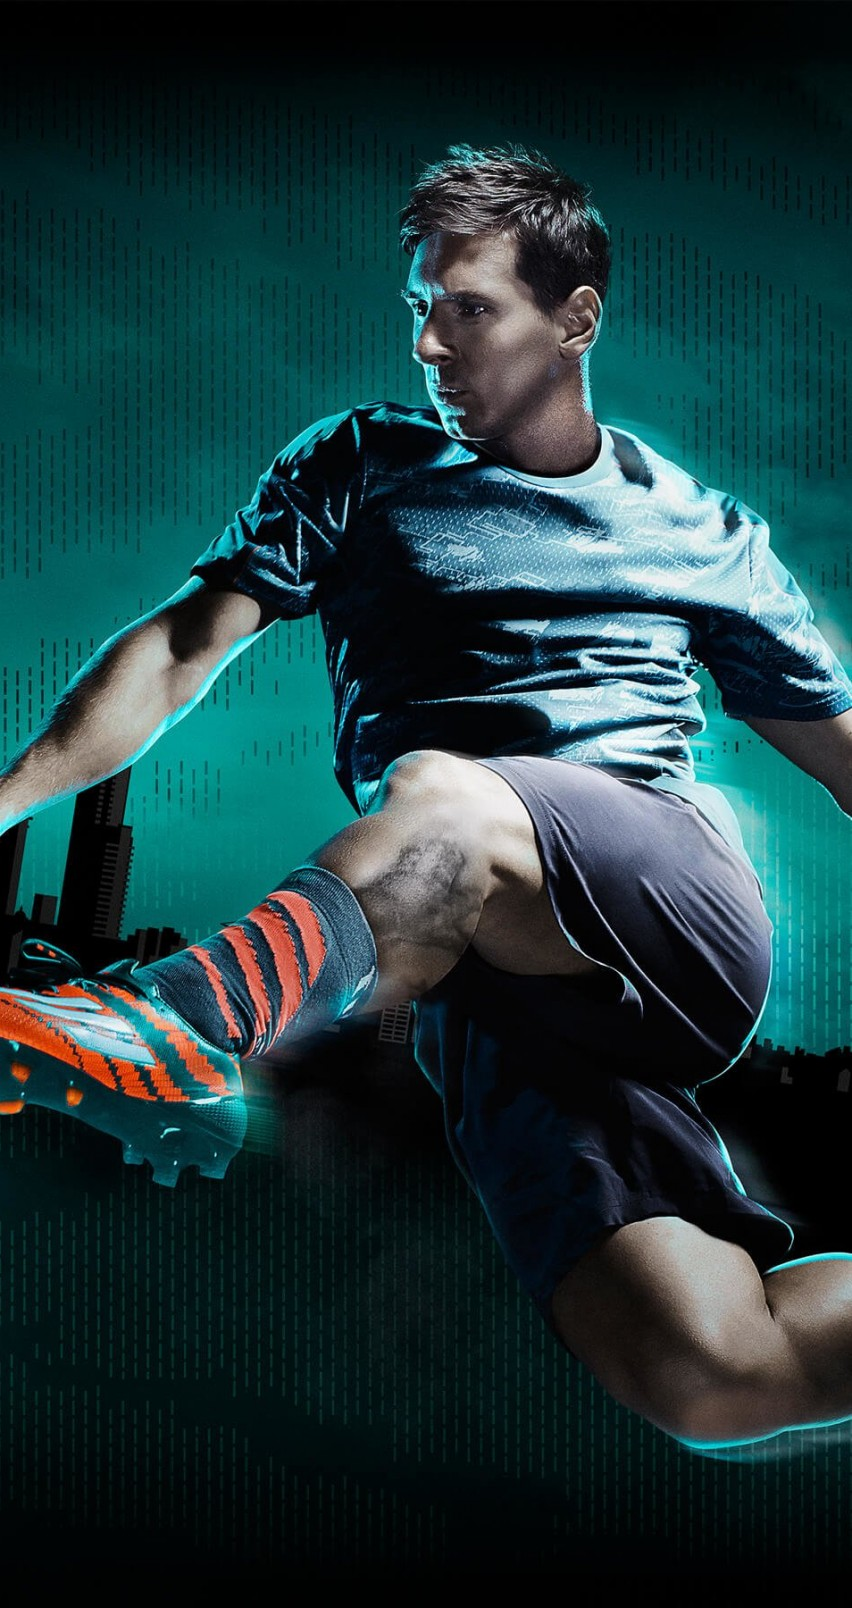 Lionel Messi Adidas Commercial Wallpaper for Apple iPhone 6 / 6s